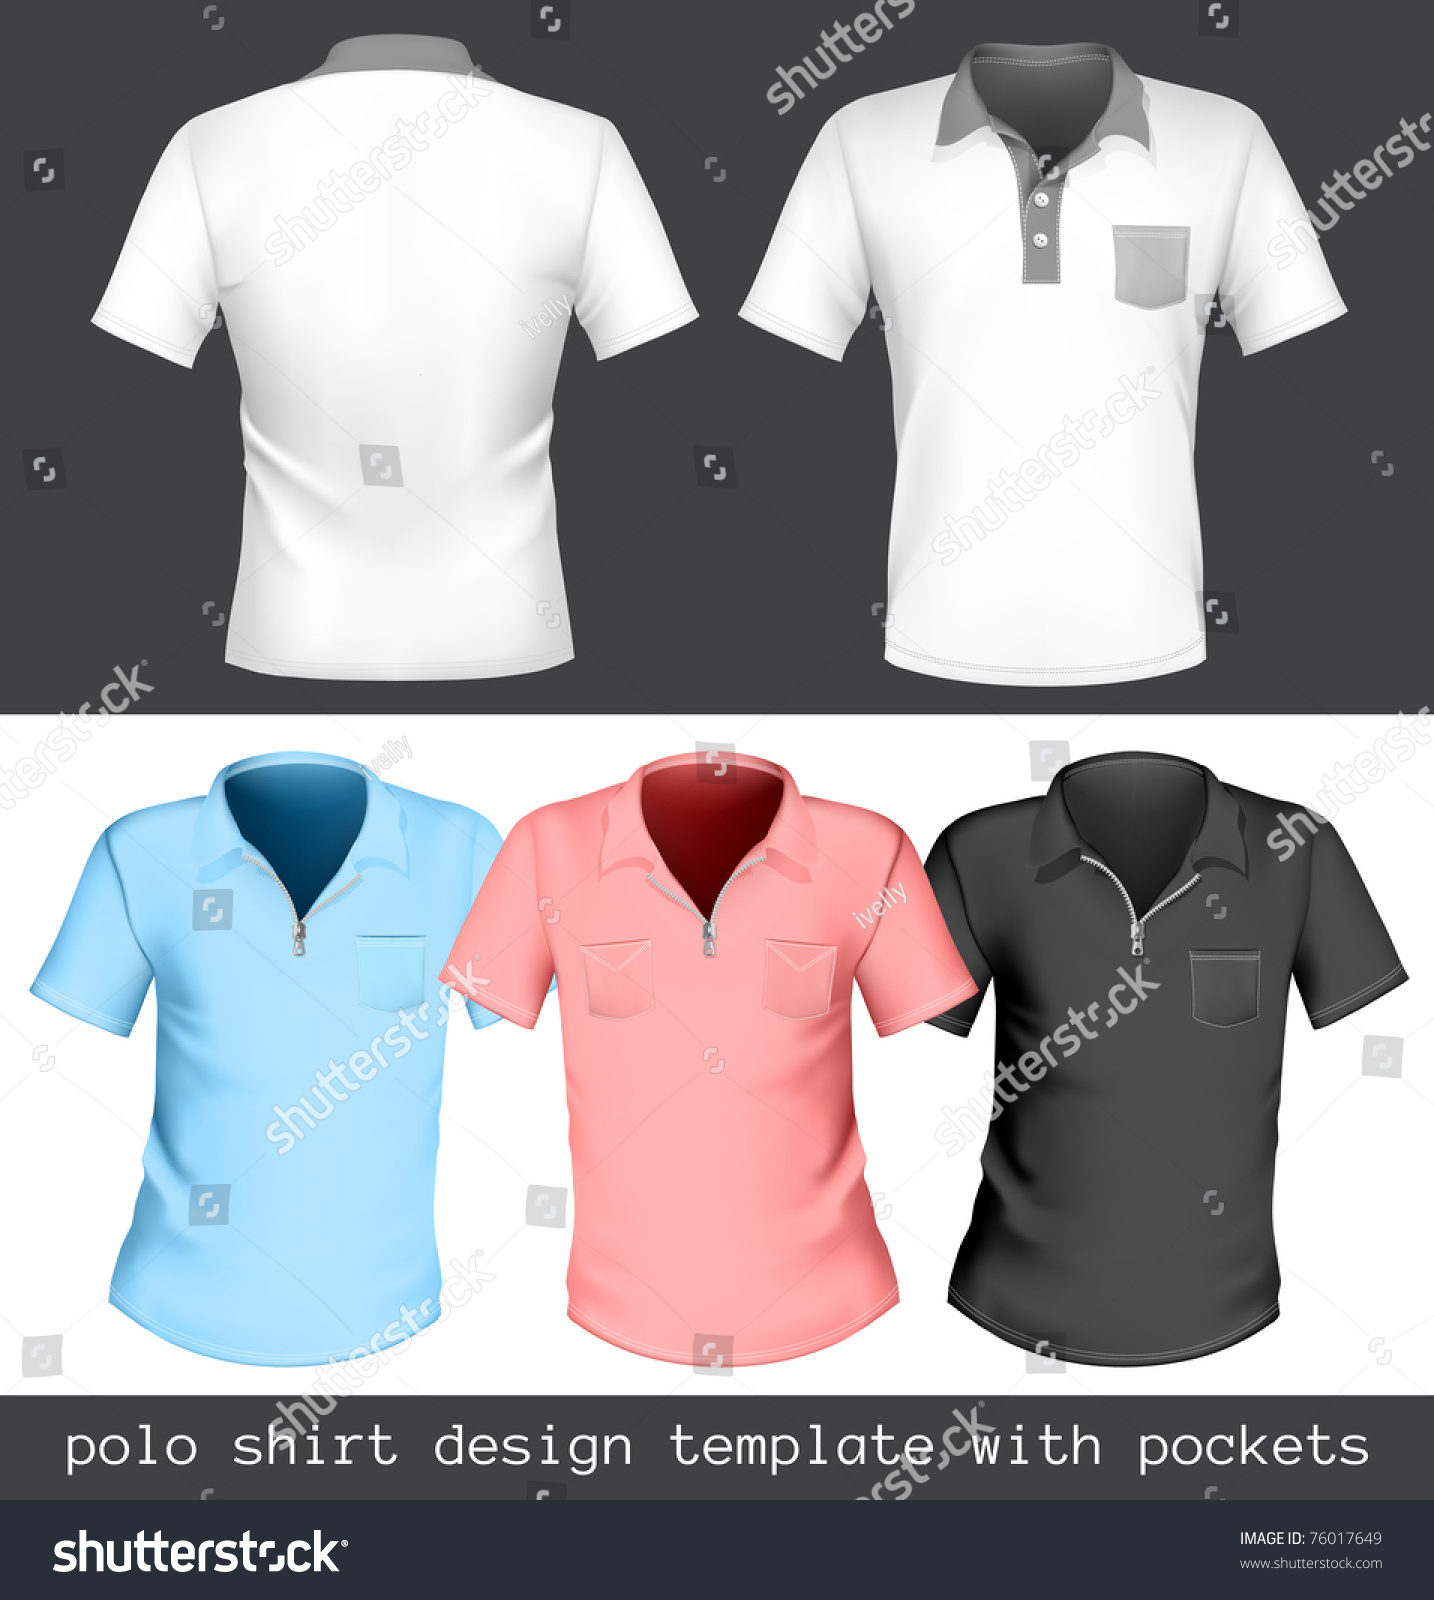 Vector Polo Shirt Design Template Pockets Stock Vector Royalty Free